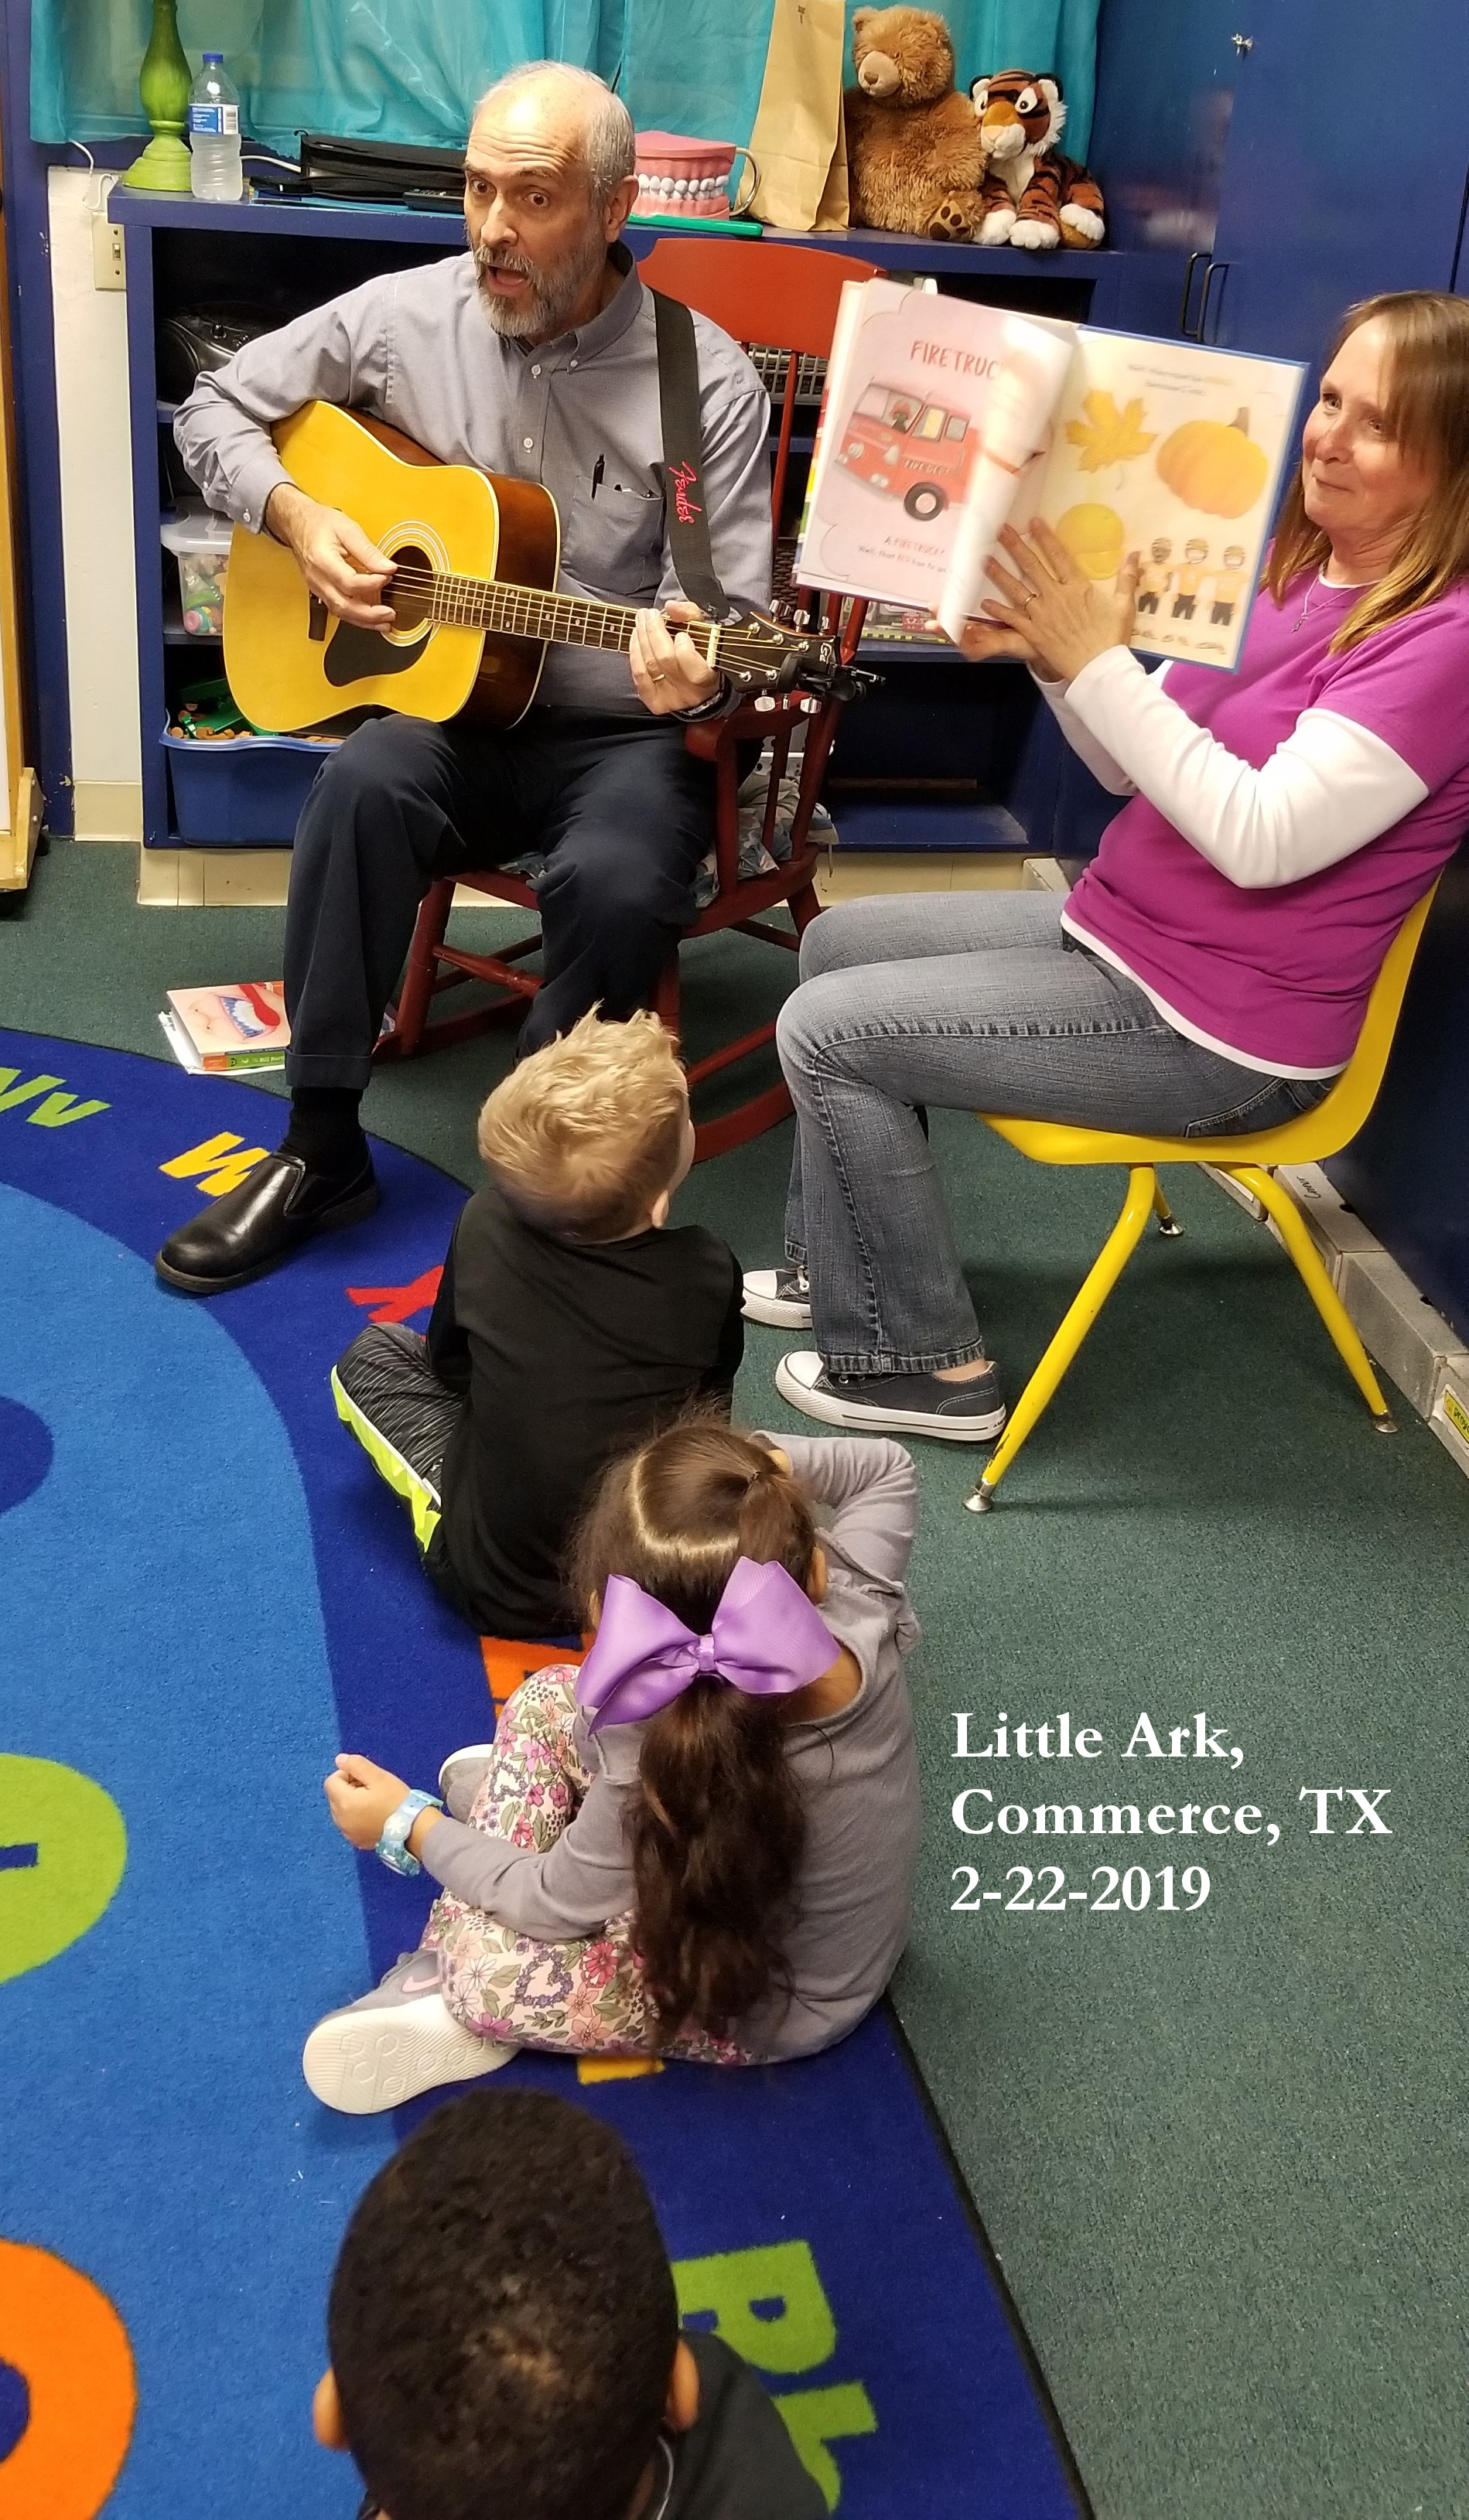 DC at Little Ark 2-22-19 w text.jpg